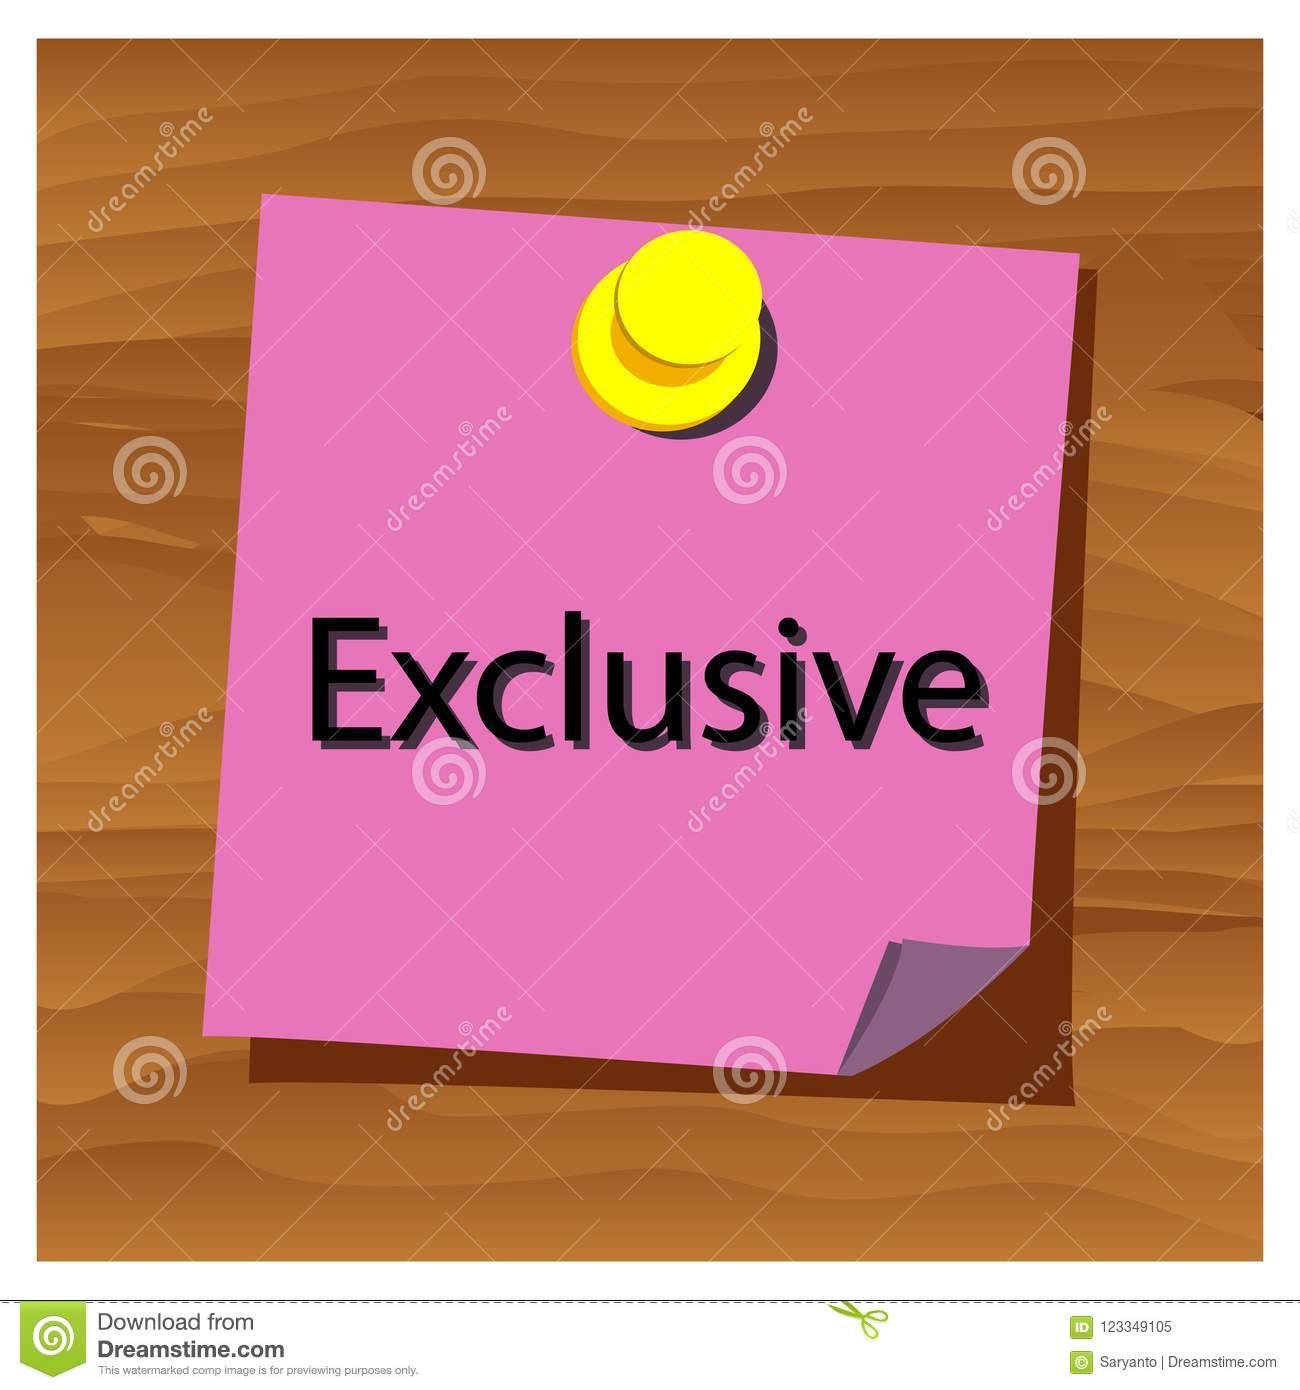 Related:www exclusivepapers com/ exclusive papers